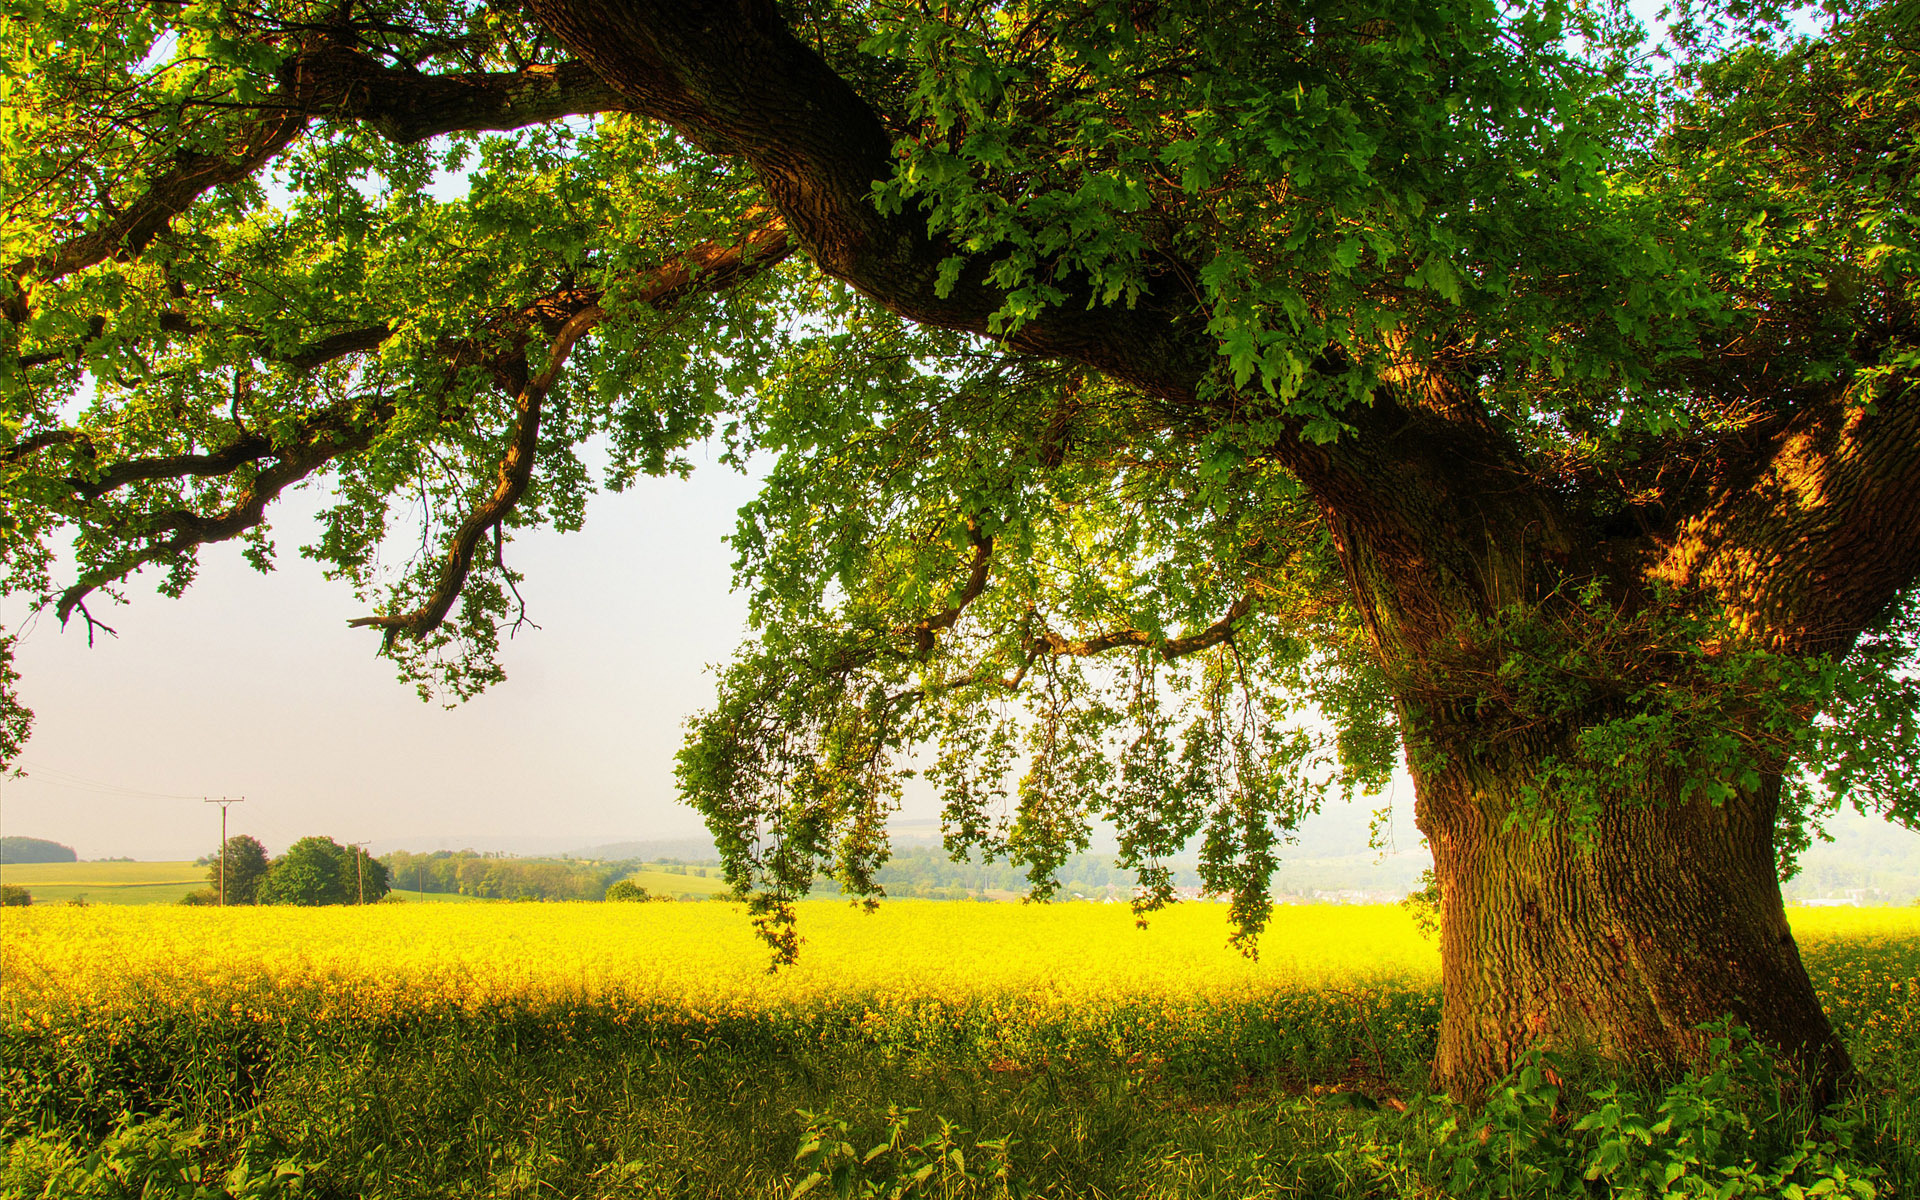 Oak tree Wallpaper 9606 1920x1200